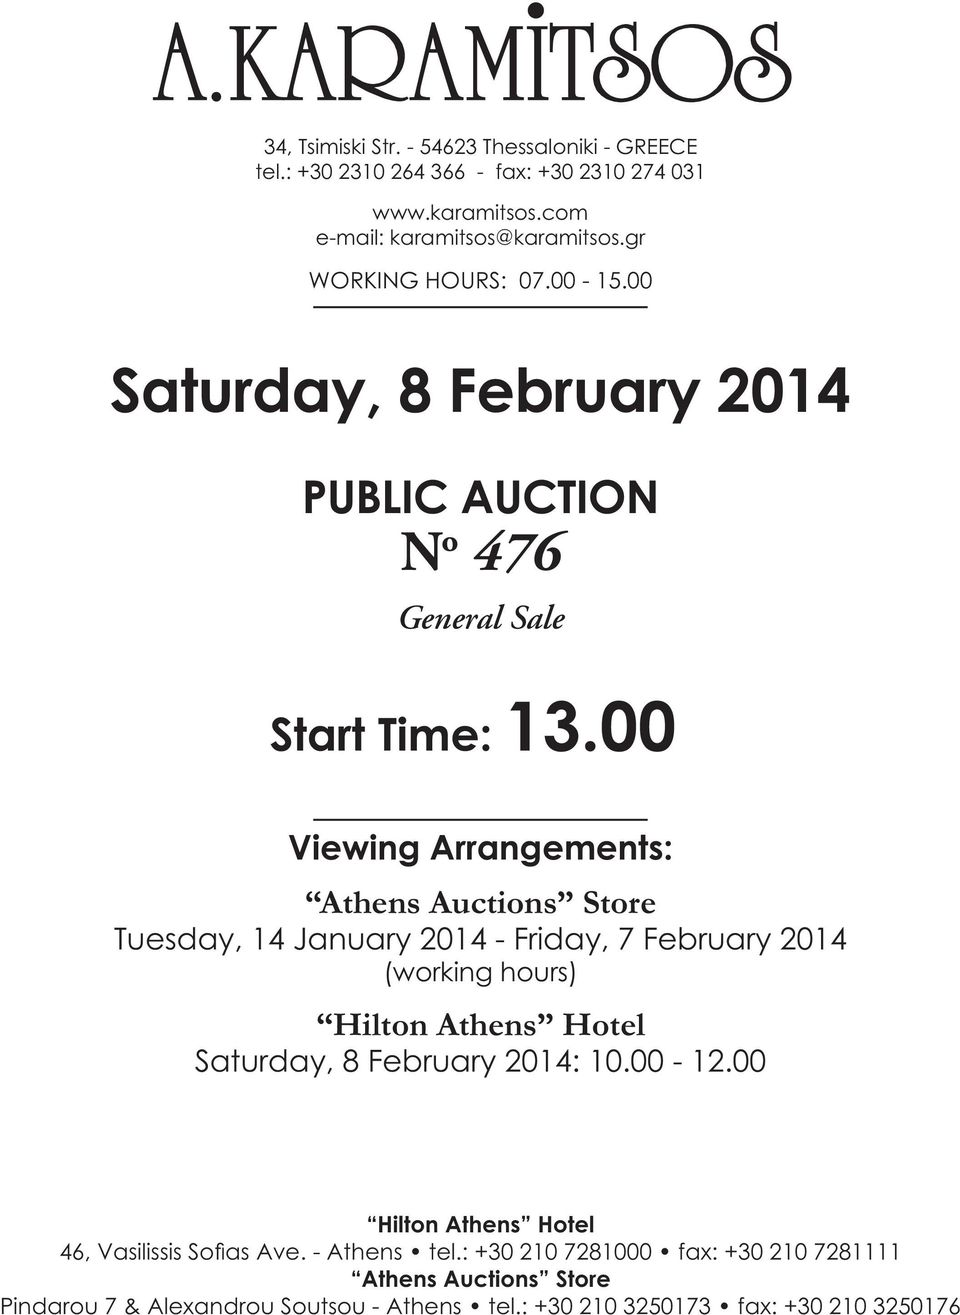 00 Viewing Arrangements: Athens Auctions Store Tuesday, 14 January 2014 - Friday, 7 February 2014 (working hours) Hilton Athens Hotel Saturday, 8 February 2014: